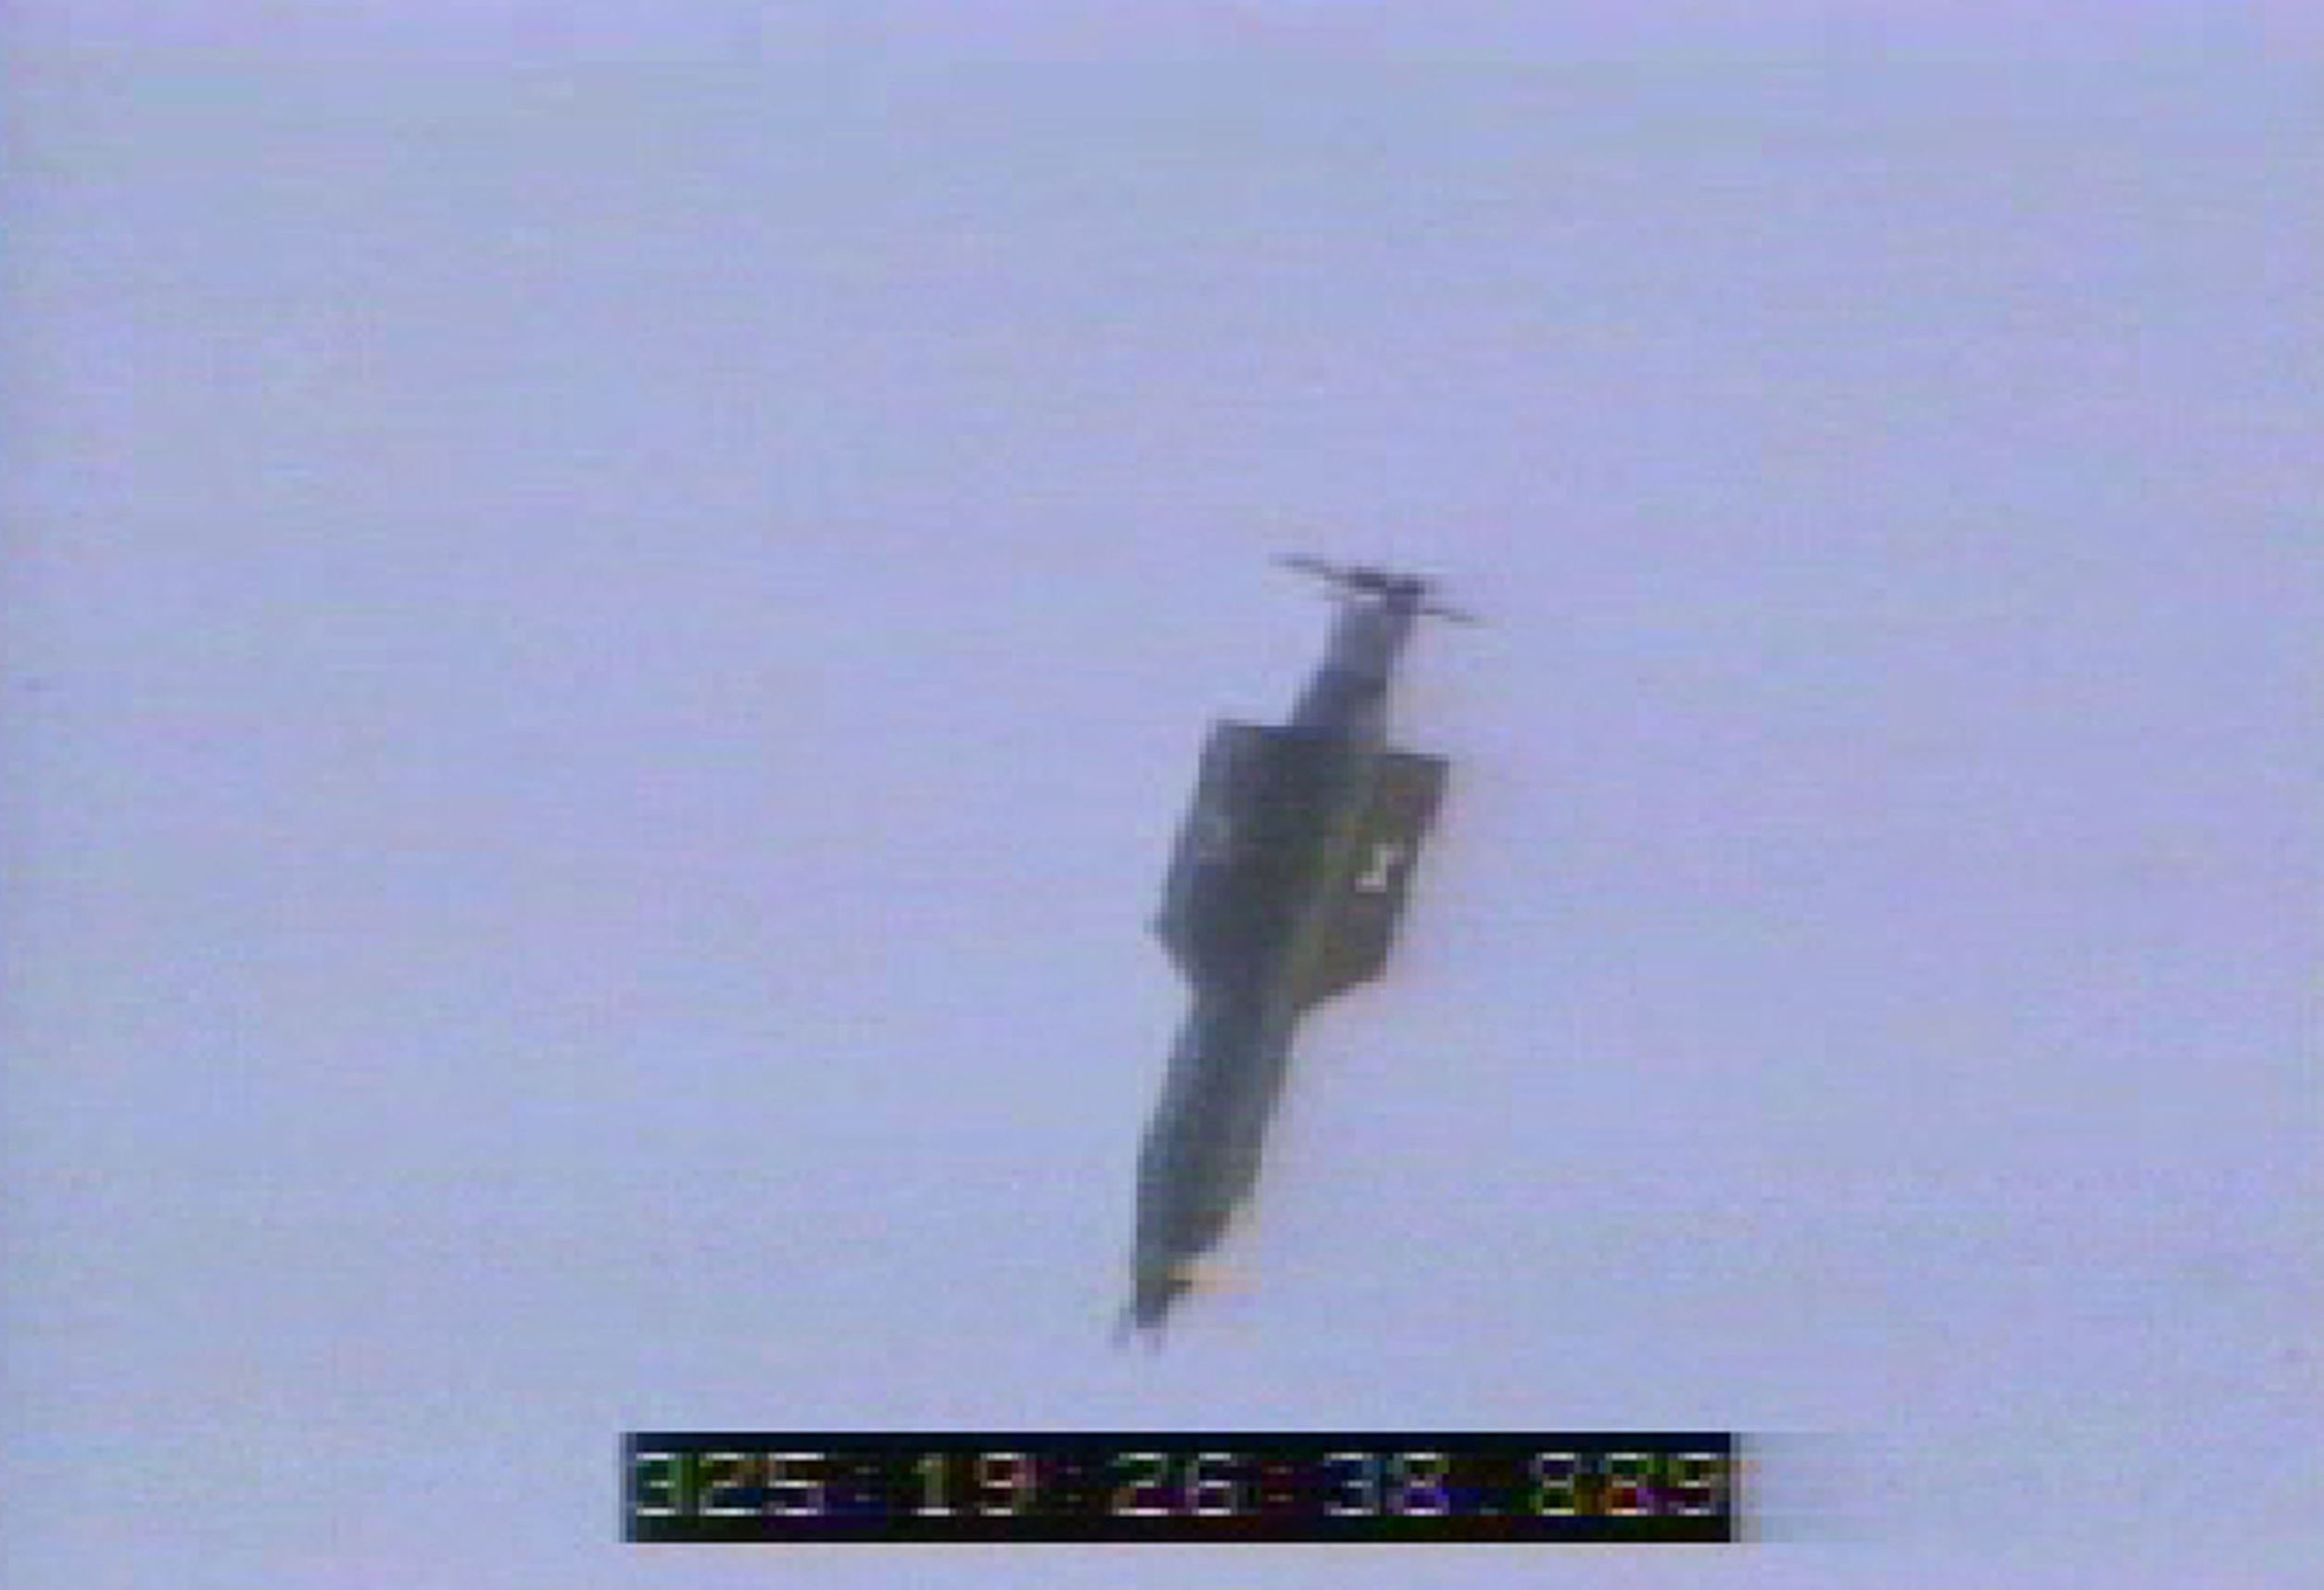 In this U.S. Air Force handout, a GBU-43/B bomb, or Massive Ordnance Air Blast (MOAB) bomb, is launched November 21, 2003 at Eglin Air Force Base, Florida. MOAB is a 21,700-pound that was droped from a plane at 20, 000 feet.